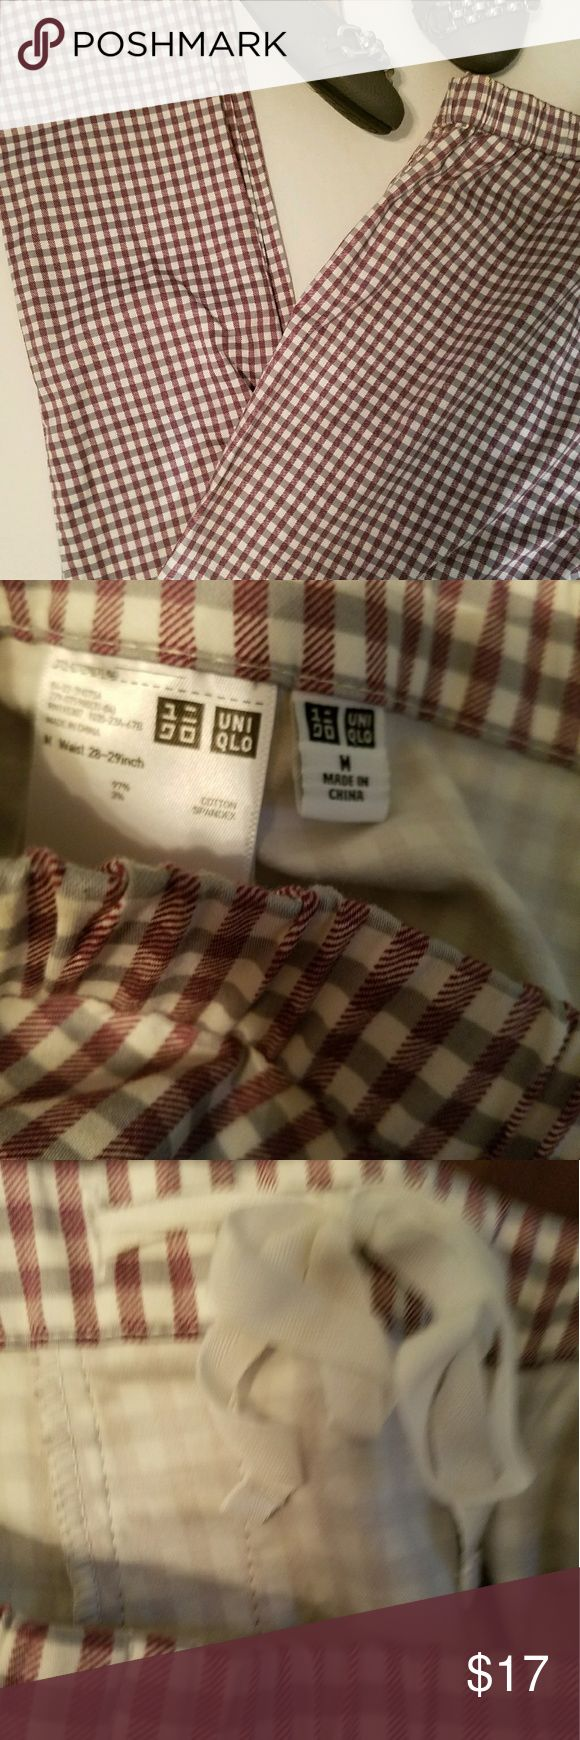 UNIQLO LEGGINGS Never worn, maroon and Gray leggings with drawstring. Material is the perfect weight for the cool weather. Uniqlo Pants Leggings